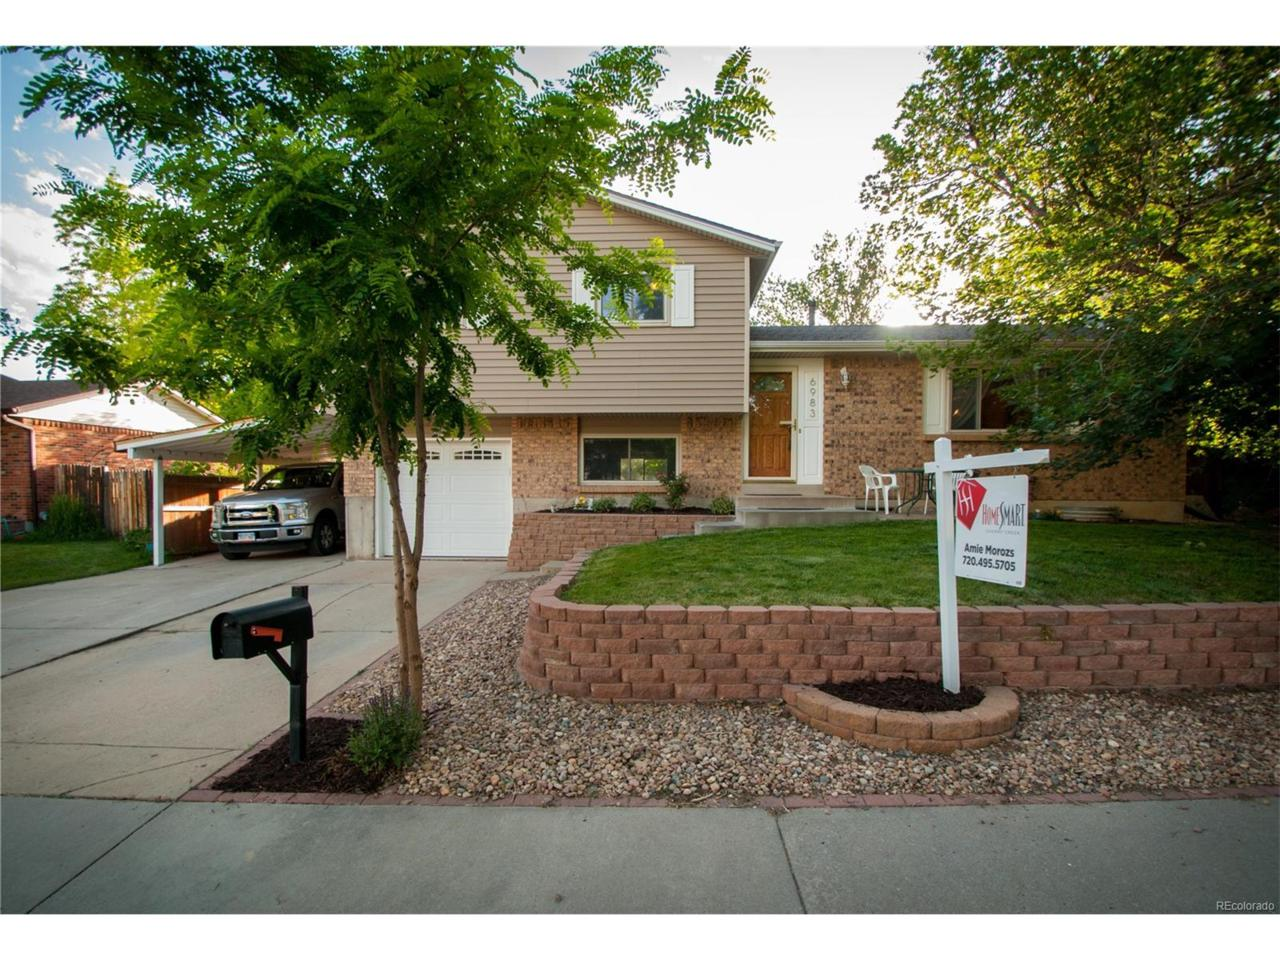 6983 Beech Court, Arvada, CO 80004 (MLS #5685925) :: 8z Real Estate